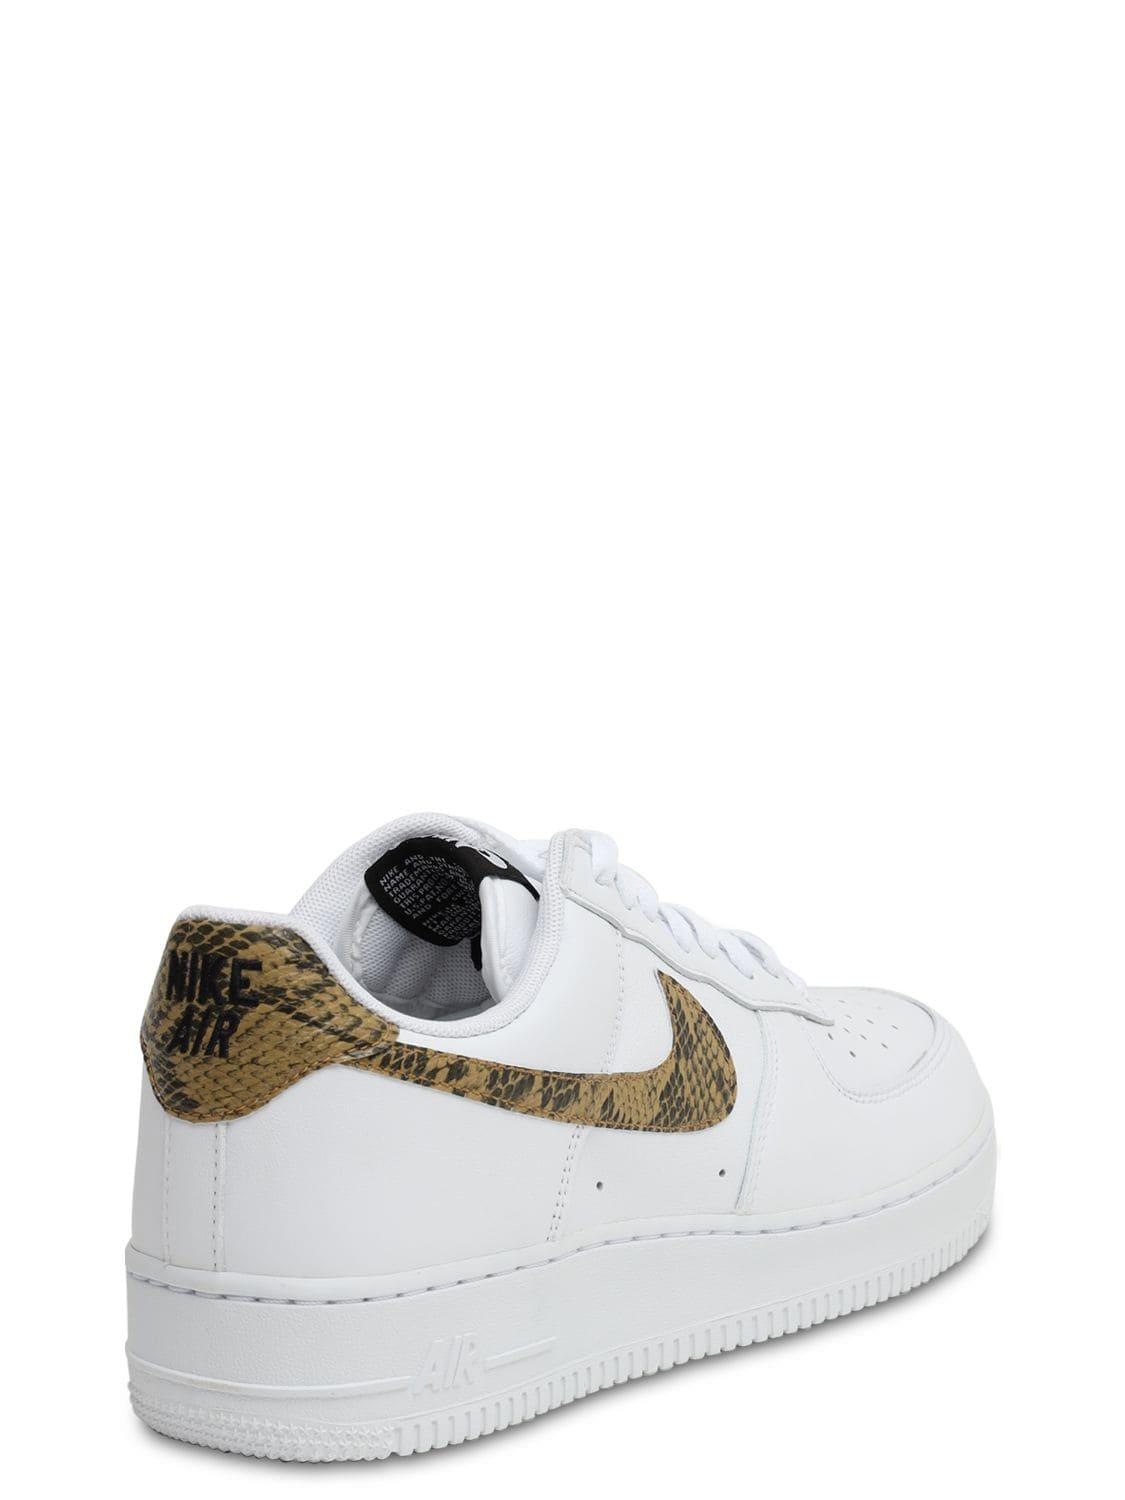 01080bbad78 Nike - White Air Force 1 Low Retro Prm Qs Sneakers for Men - Lyst. View  fullscreen